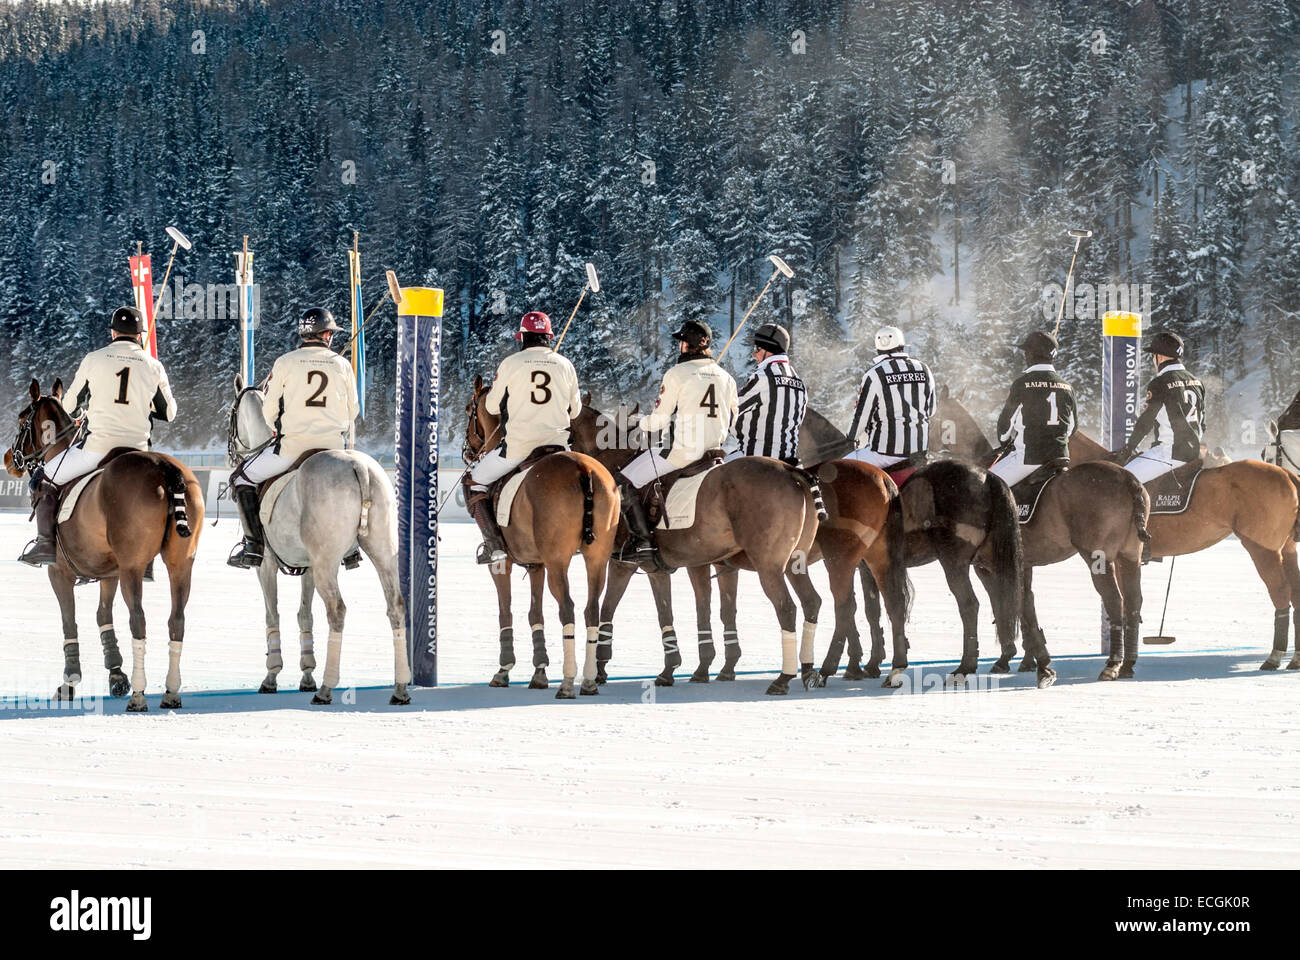 Polo Player line up during the Snow Polo World Cup 2013 Match, St.Moritz, Switzerland - Stock Image